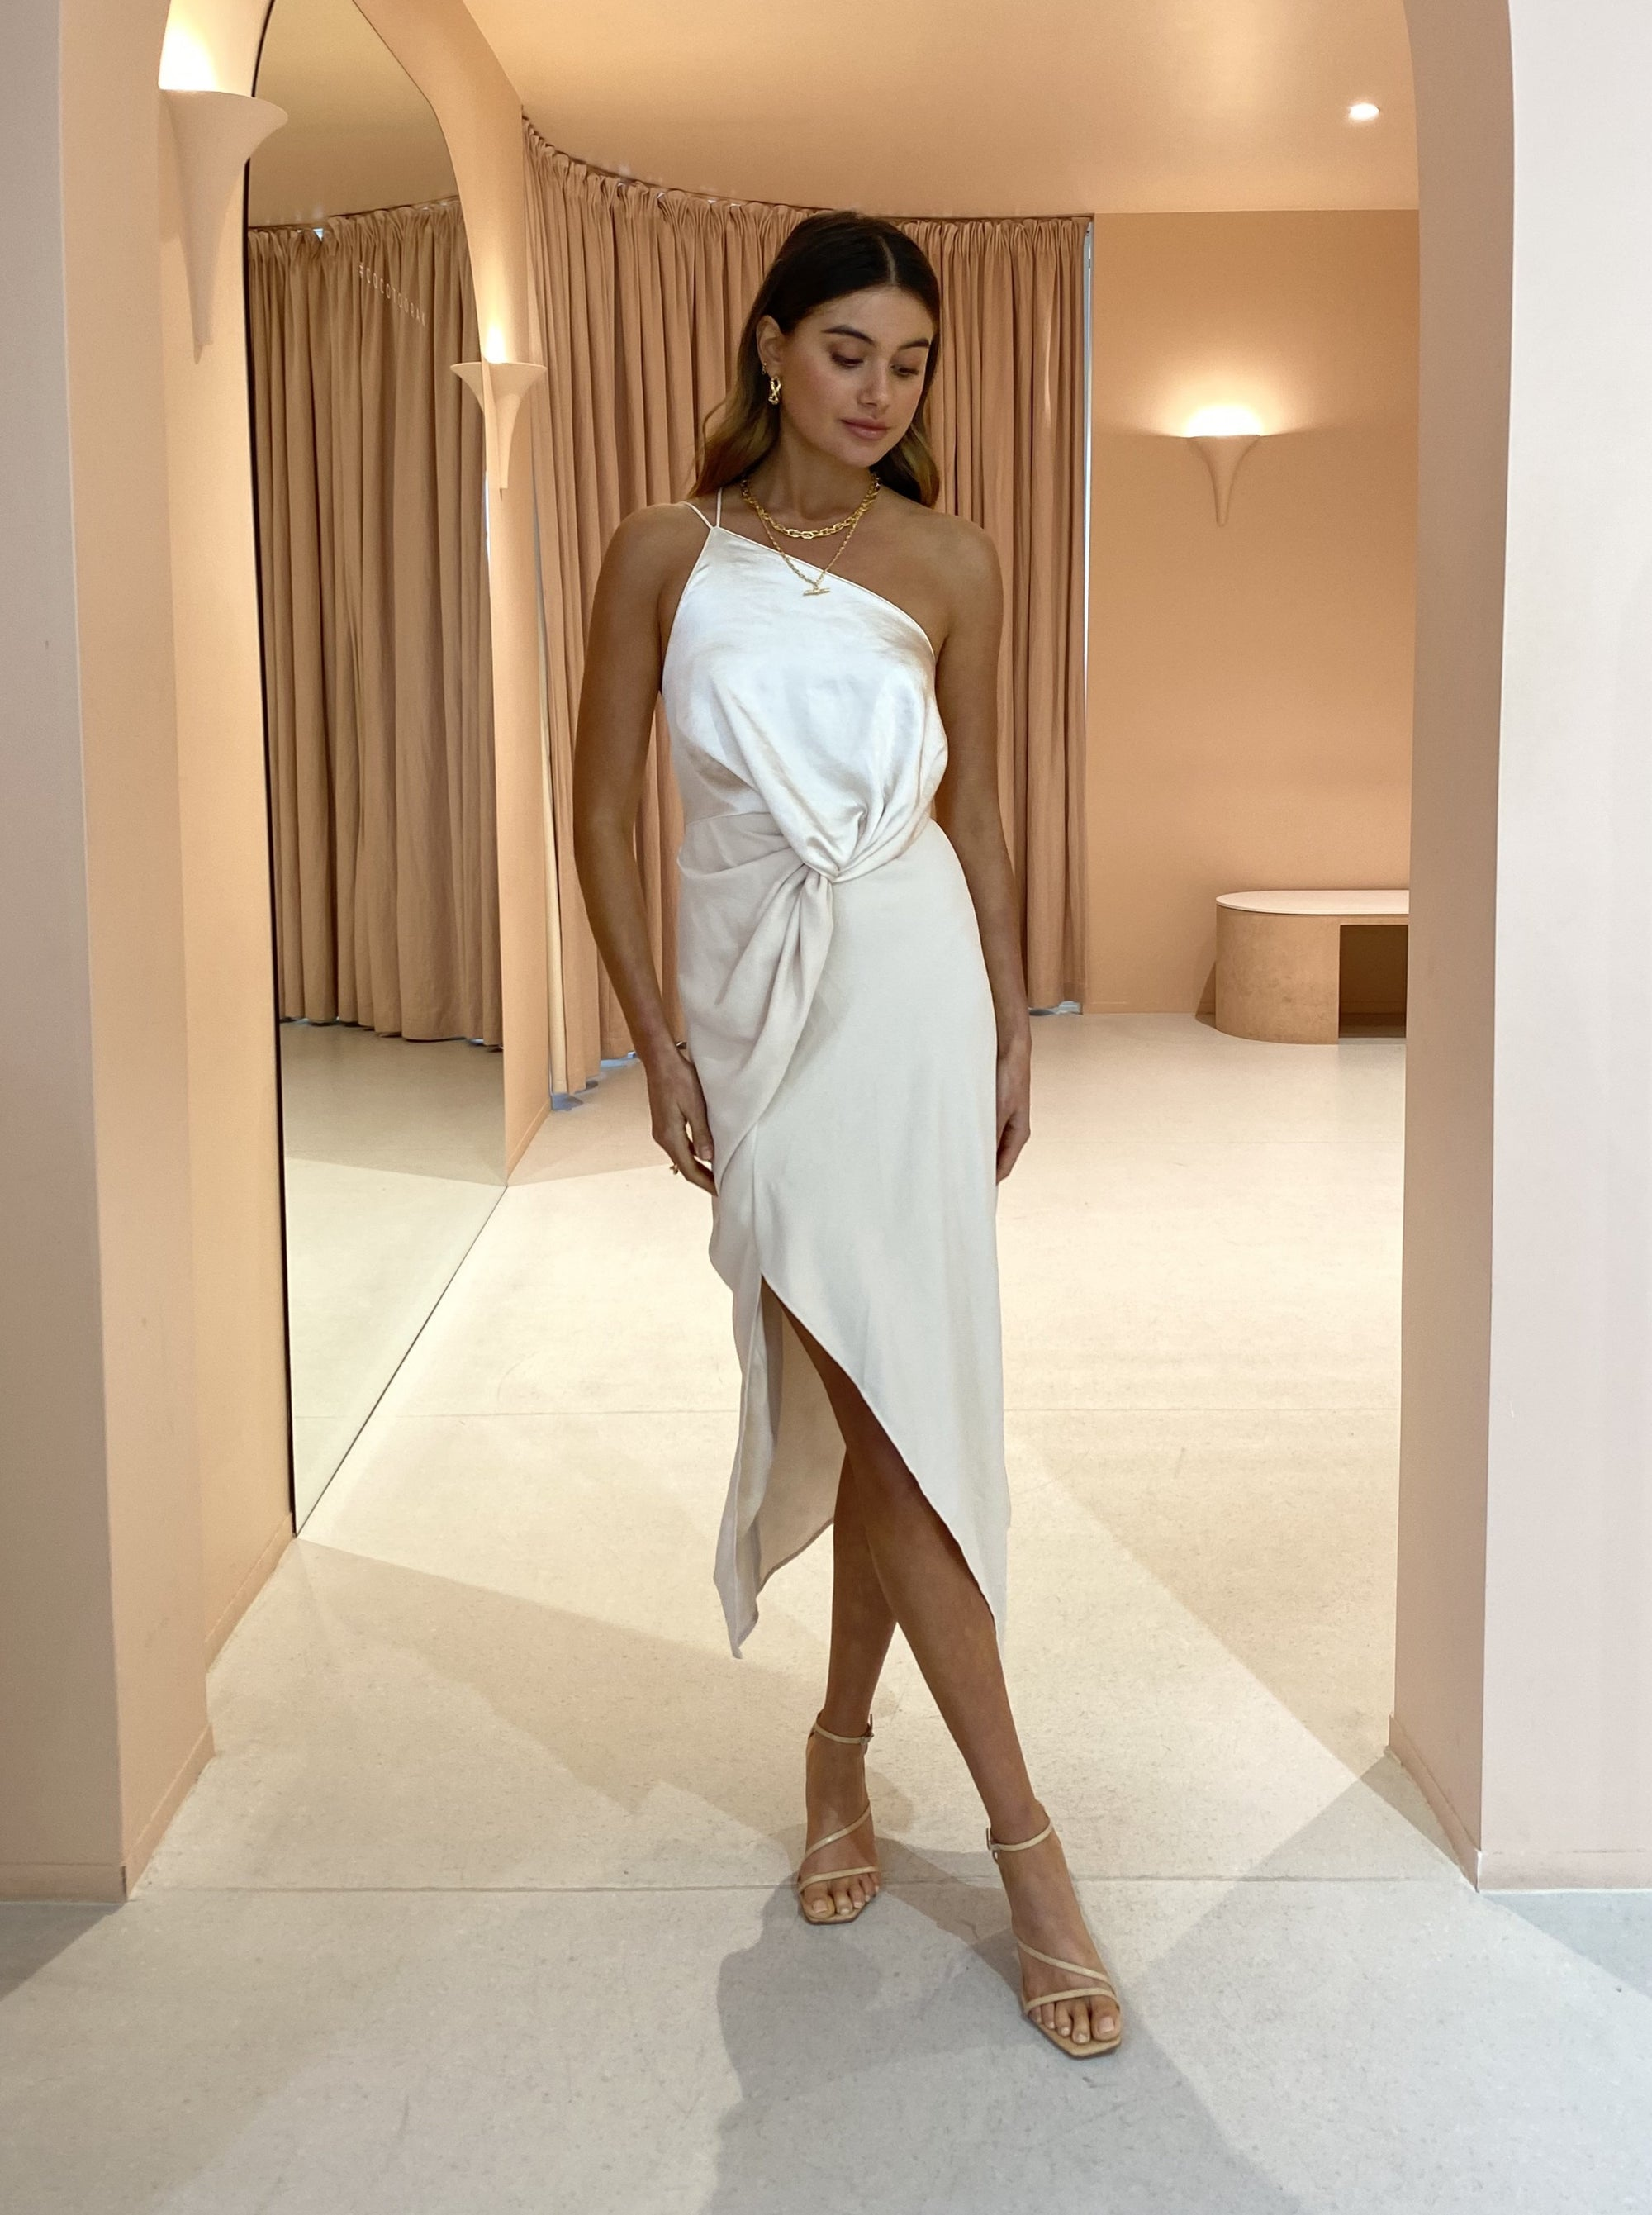 One Fell Swoop Besame Dress in Mother of Pearl